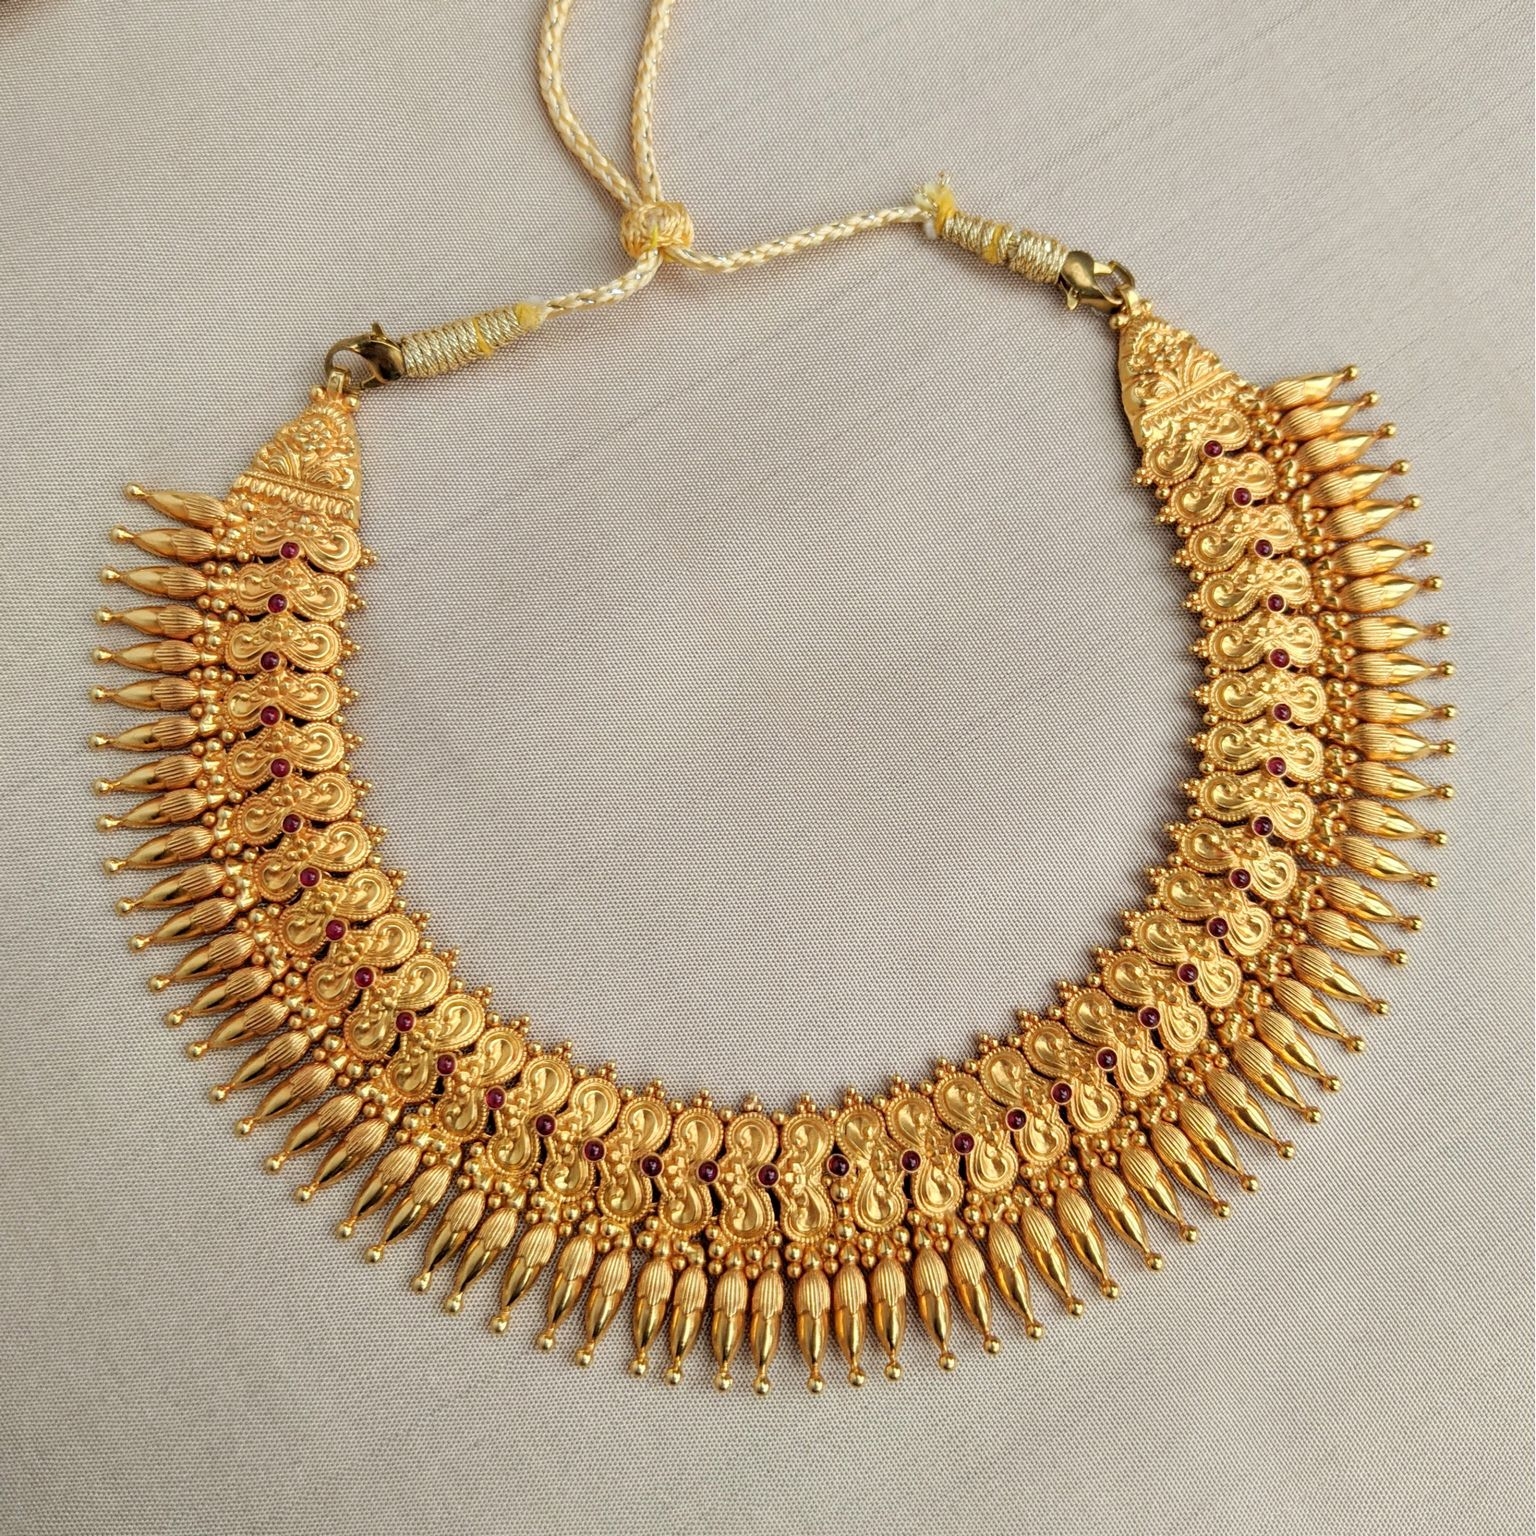 Necklace - Short - Antique Mallige with Cob Ruby | Gujjadi Swarna Jewellers